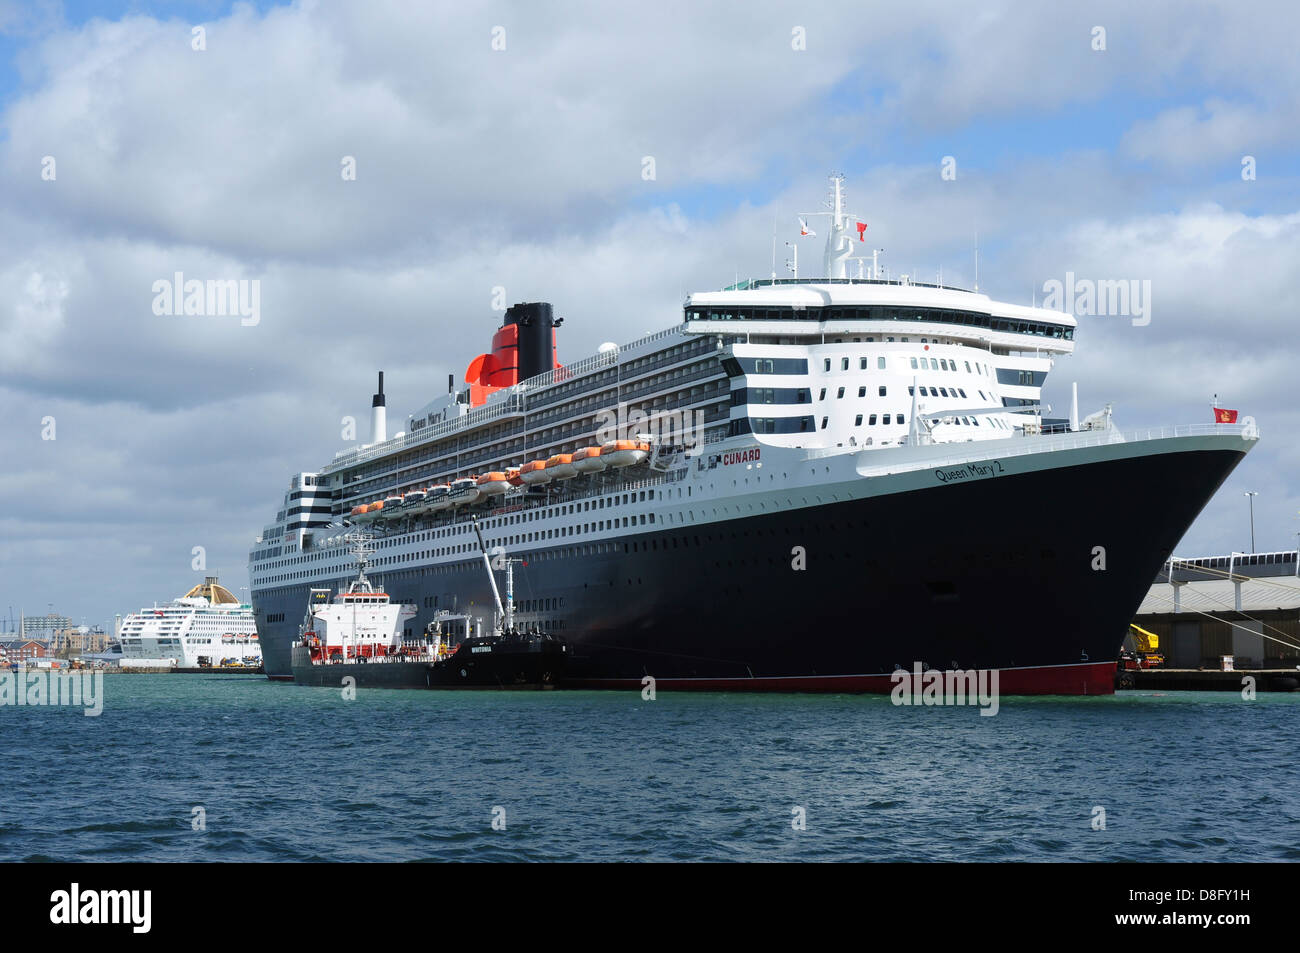 Cunard ship Queen Mary 2 docked at Southampton, Hampshire, England, UK - Stock Image